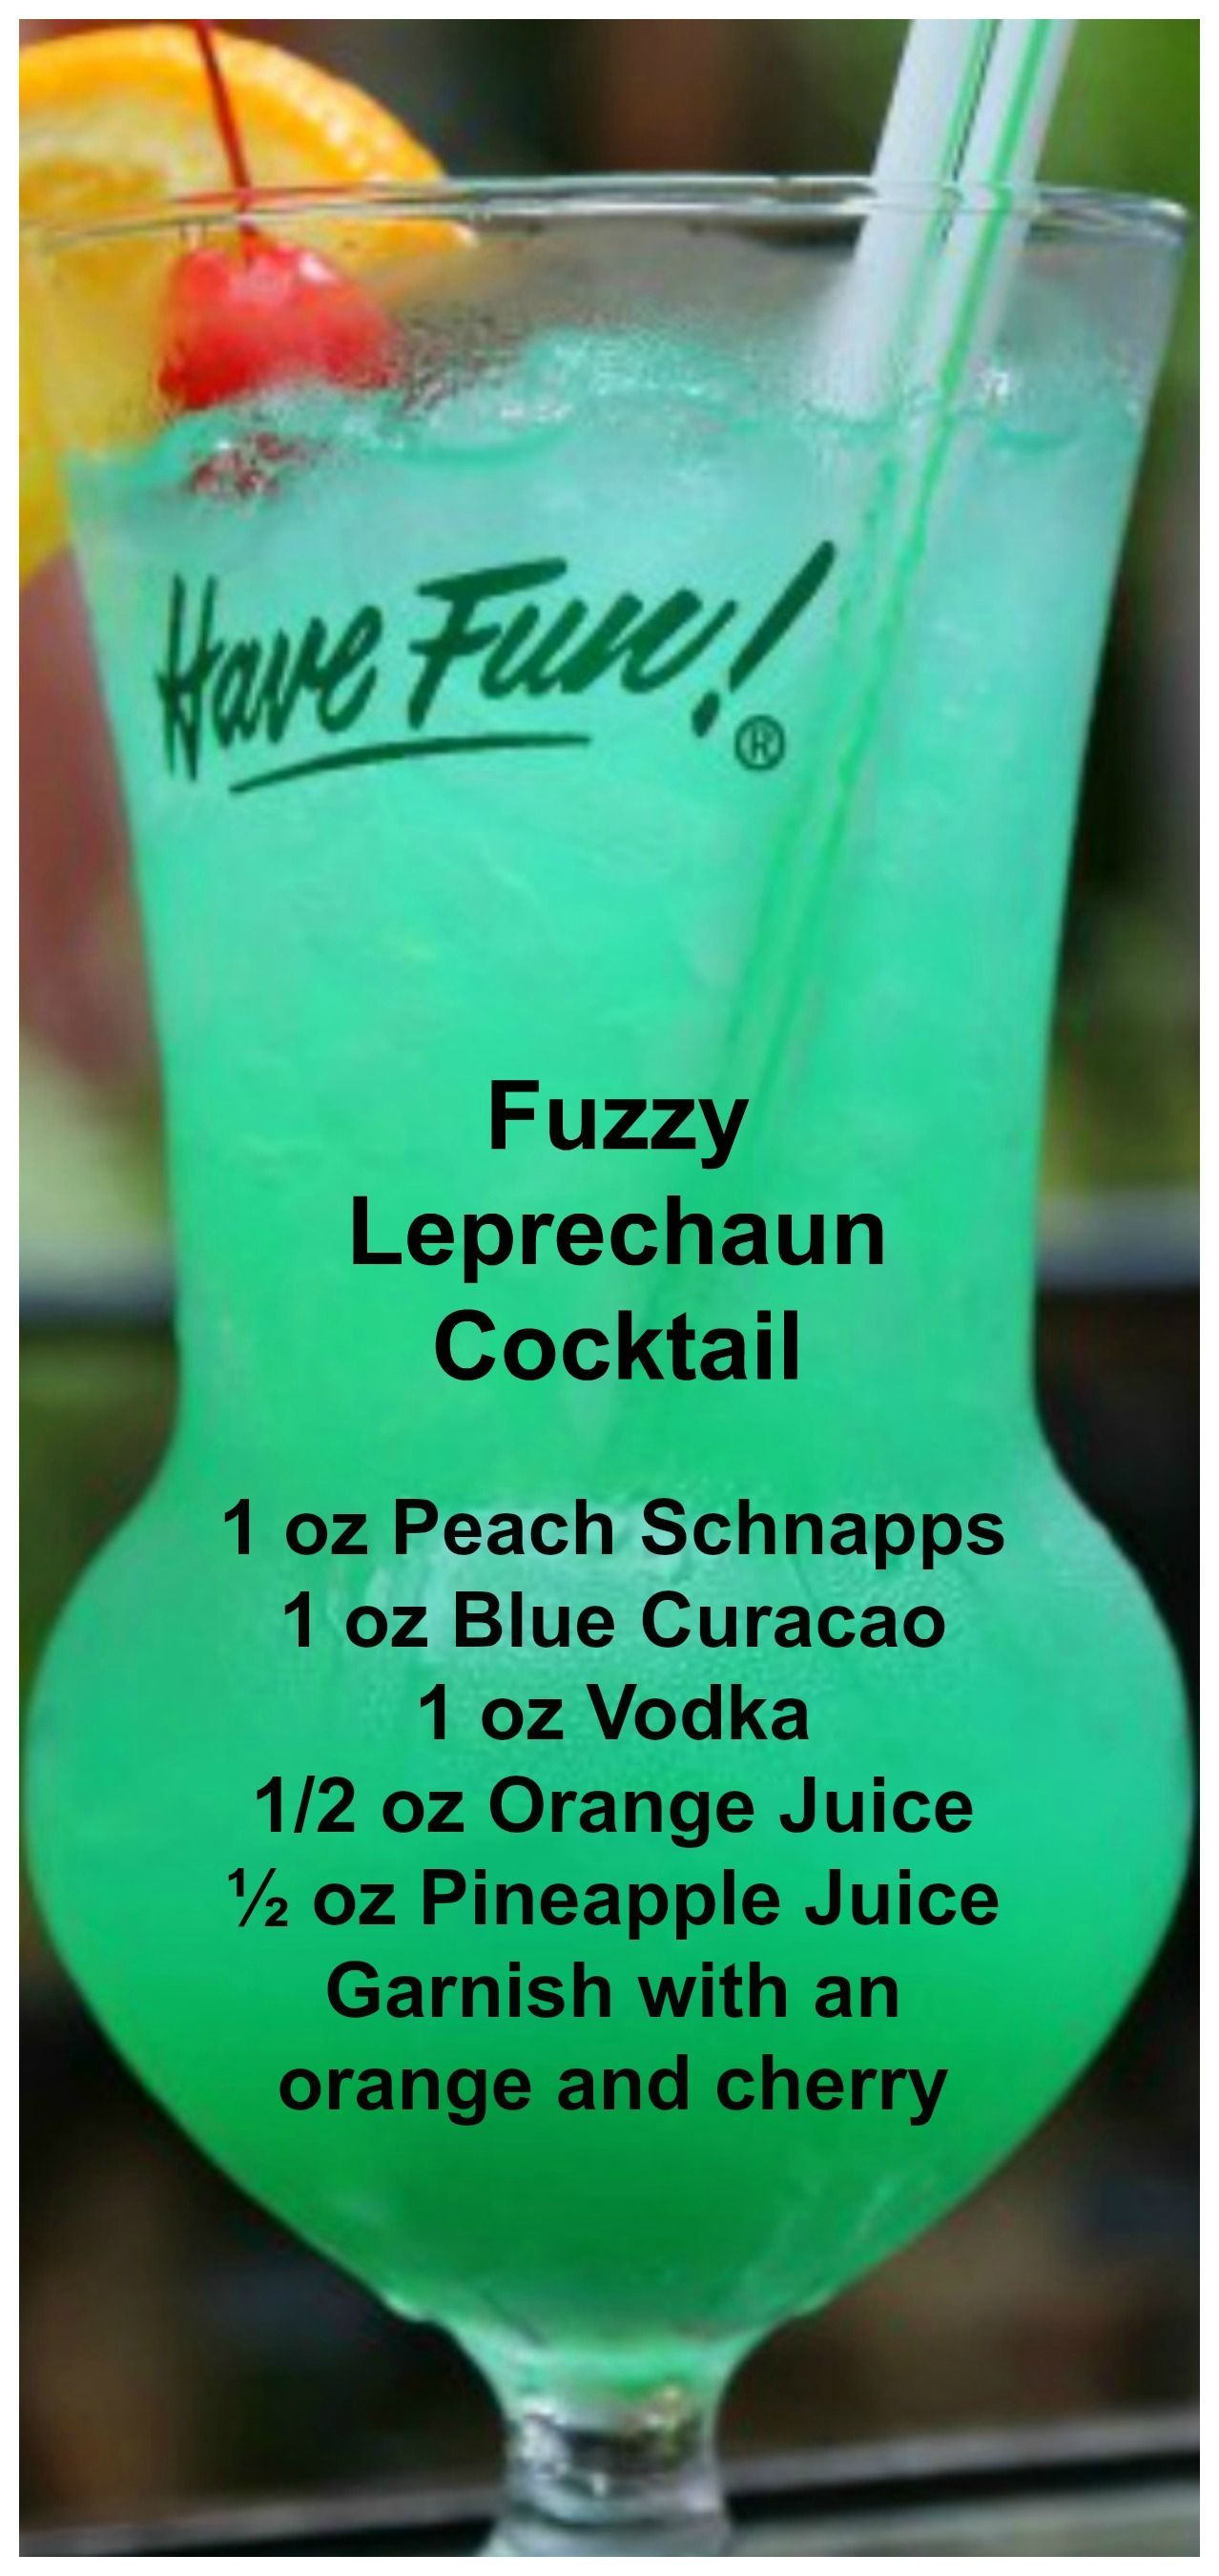 Fuzzy Leprechaun Cocktail Fresh, light and low cal summer drinks that are an easy breezy treat! All you need is a blender to whip up this Watermelon Breeze recipe. #summeralcoholicdrinks